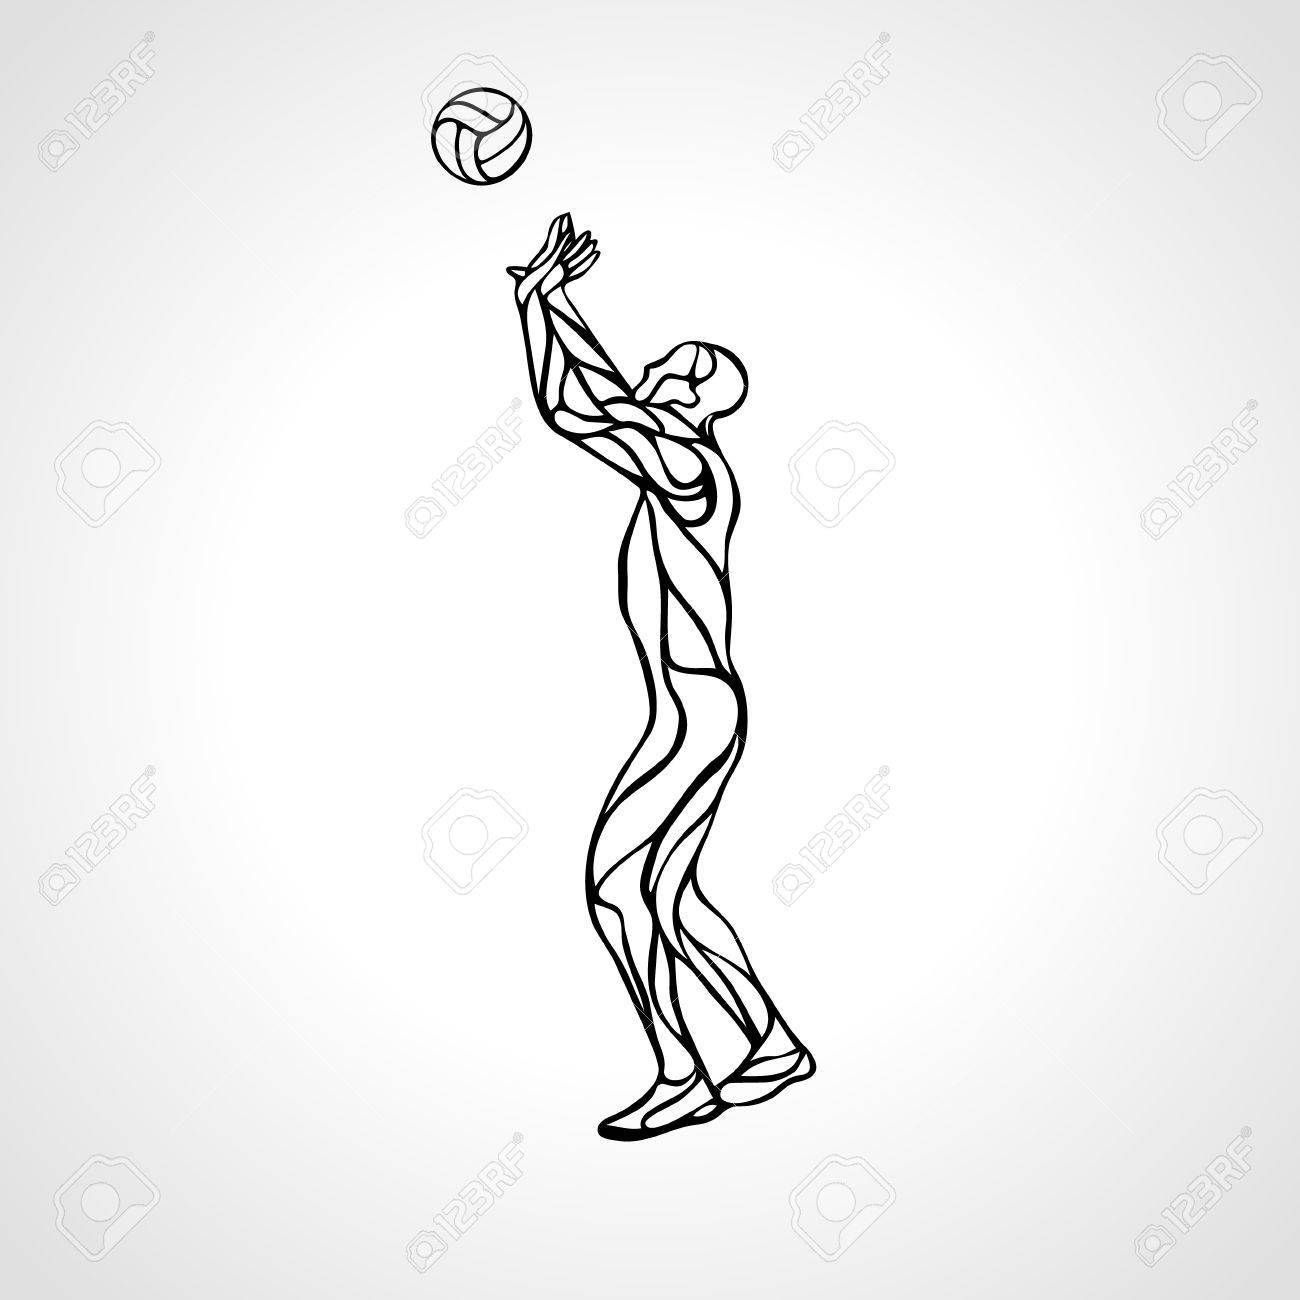 1300x1300 Stylized Athlete, Played Volleyball. Volleyball Player On Setter